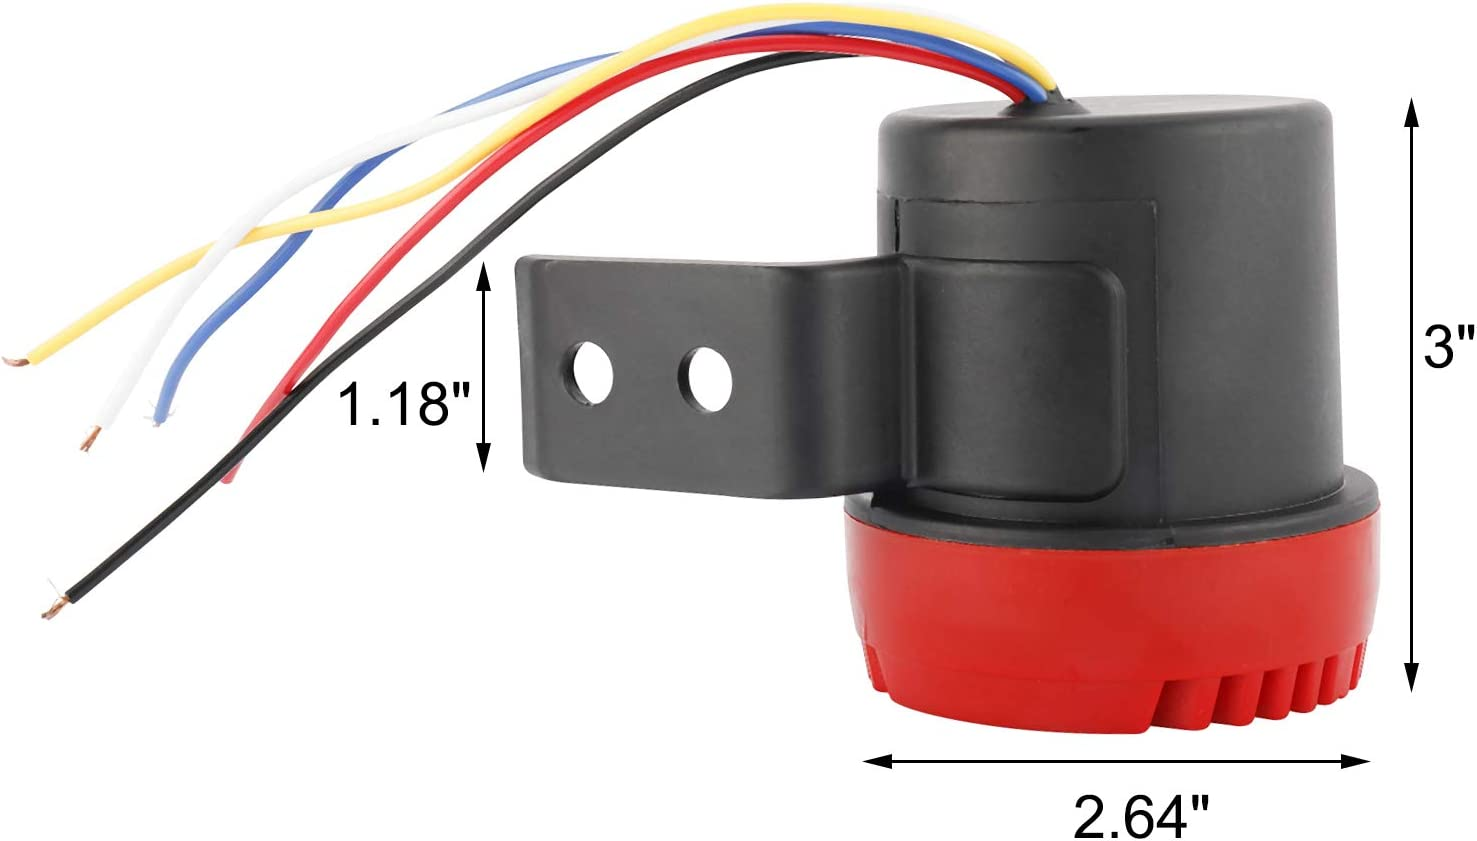 NovelBee 12V-24V 110db Car Air Horn Warning Alarm with Turn Right,Left and Back Up Alert Voice for Car,Truck